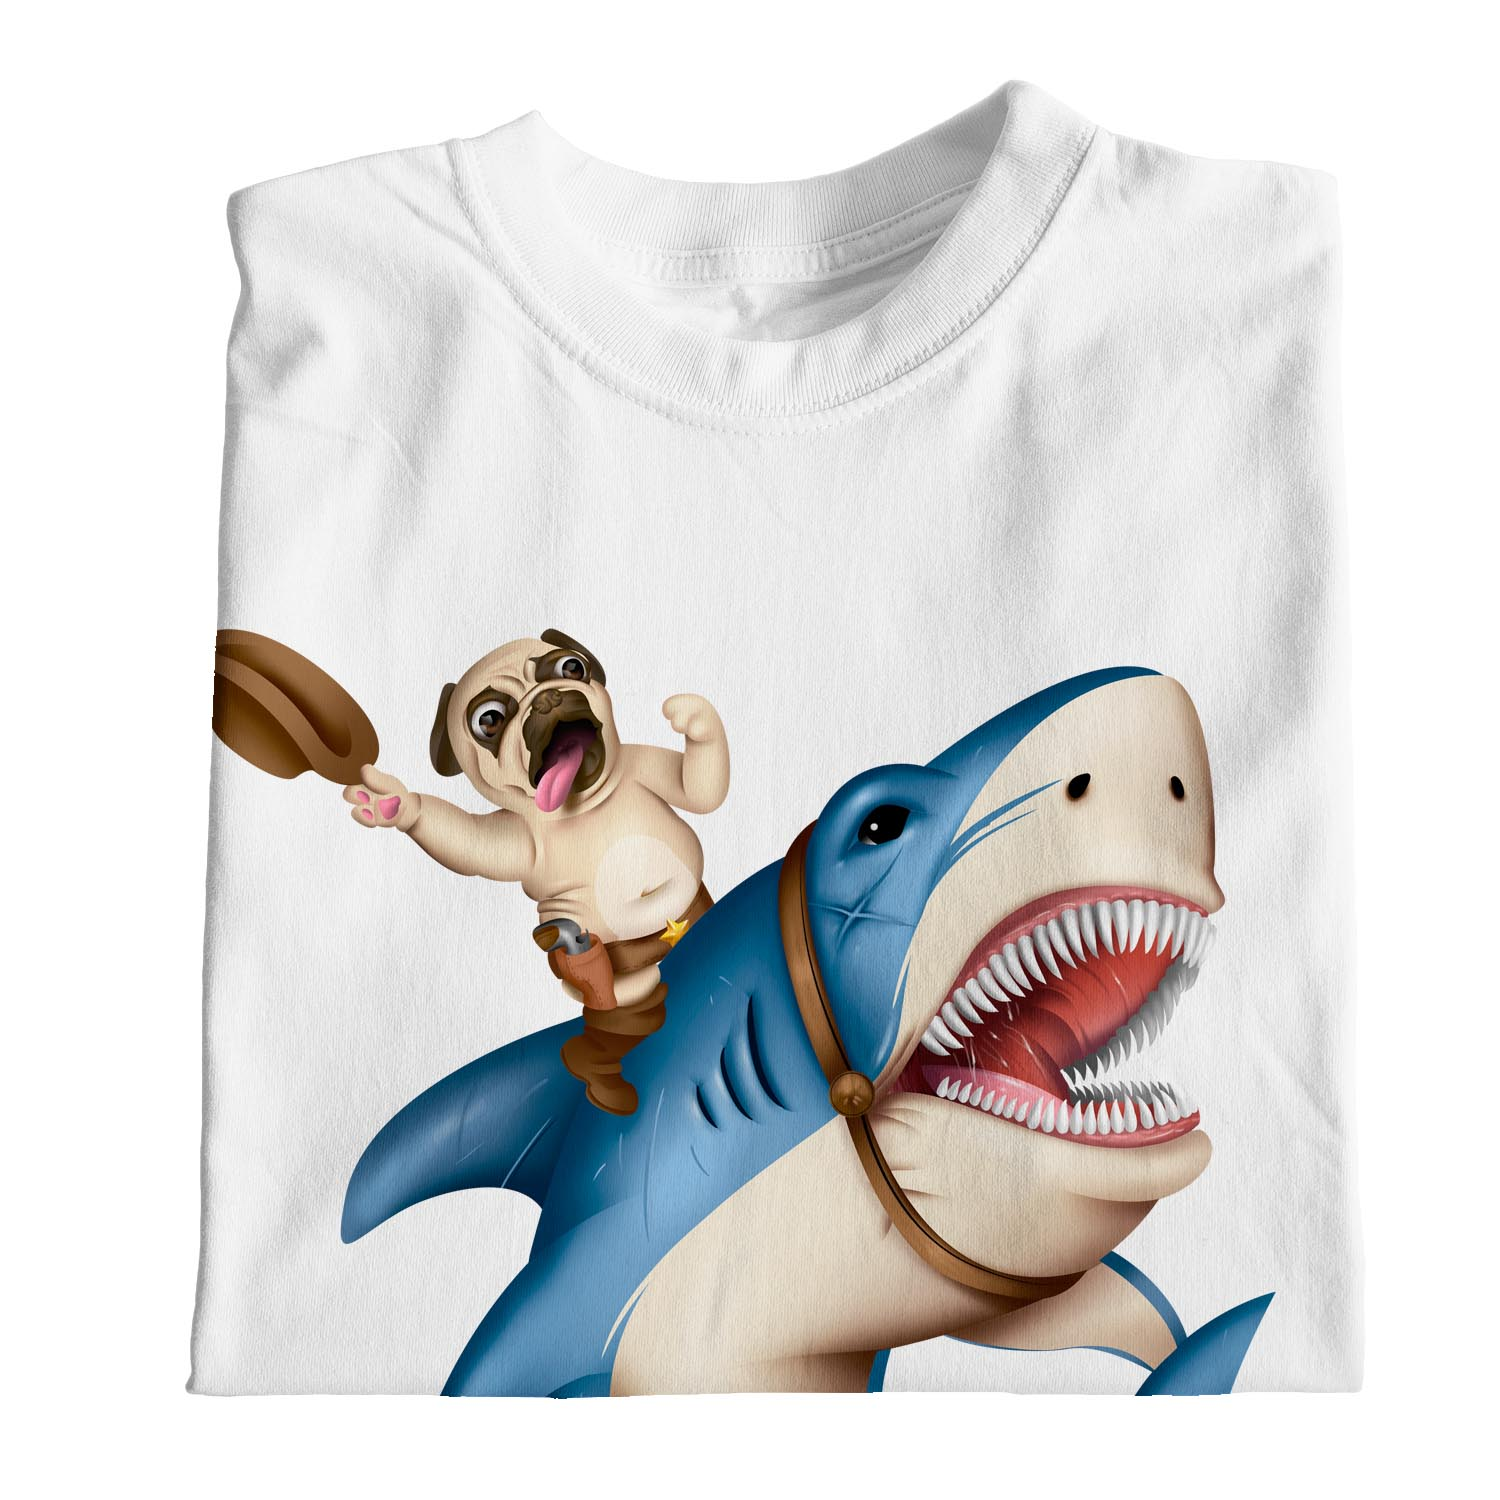 1Tee Mens Cowboy Pug Riding Shark T-Shirt